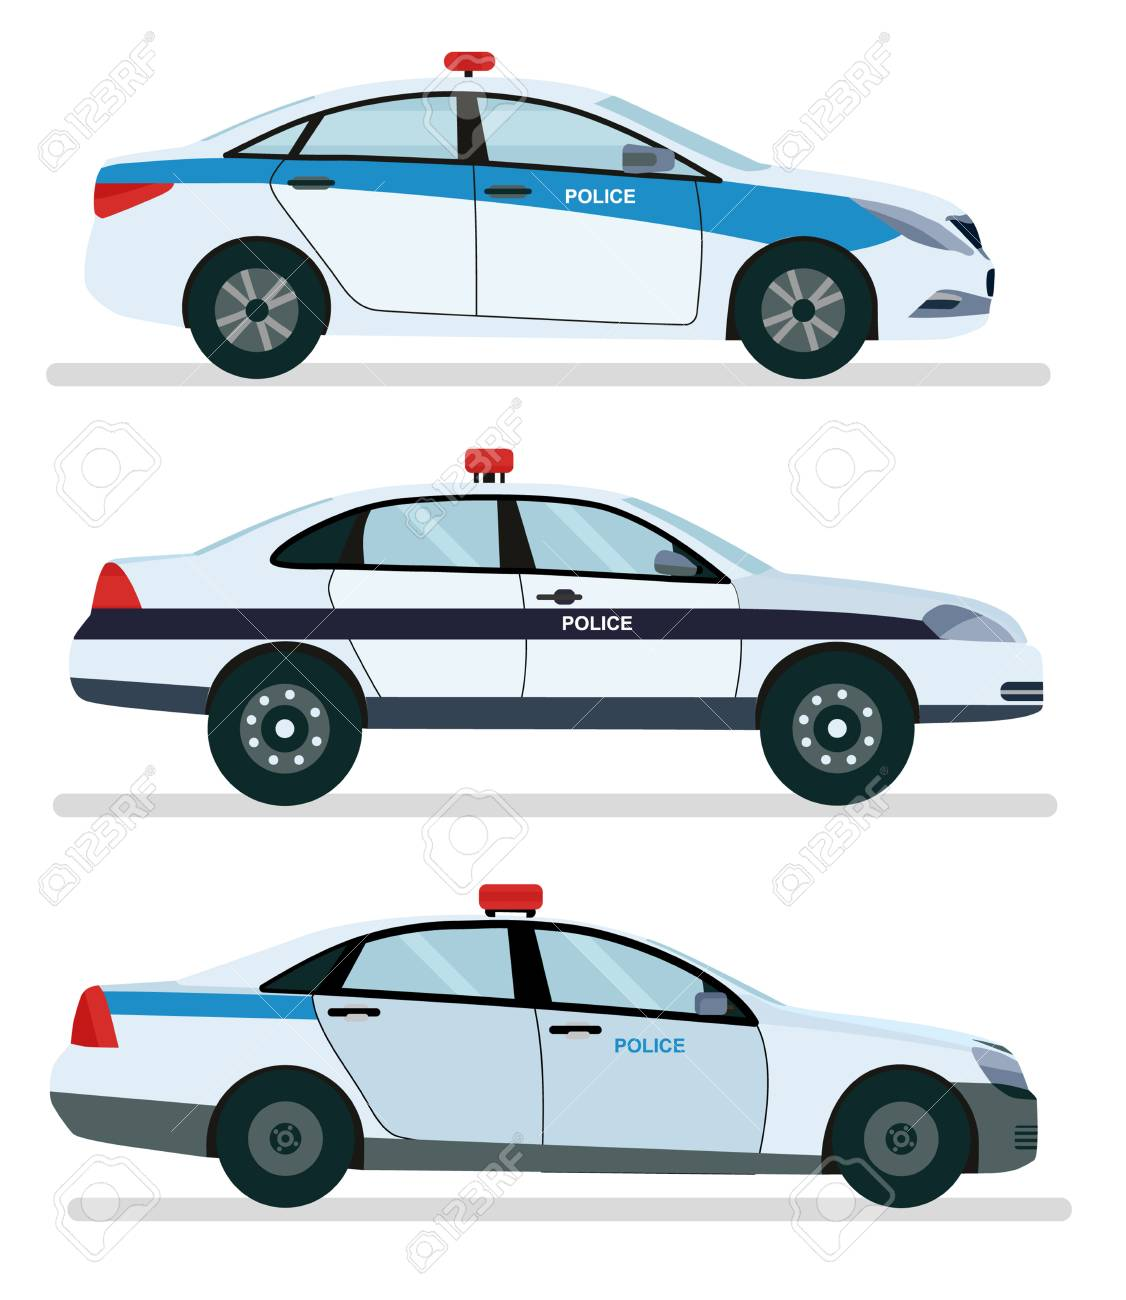 Police car side view isolated on white. Vector cartoon design illustration isolated on white background. - 102246473